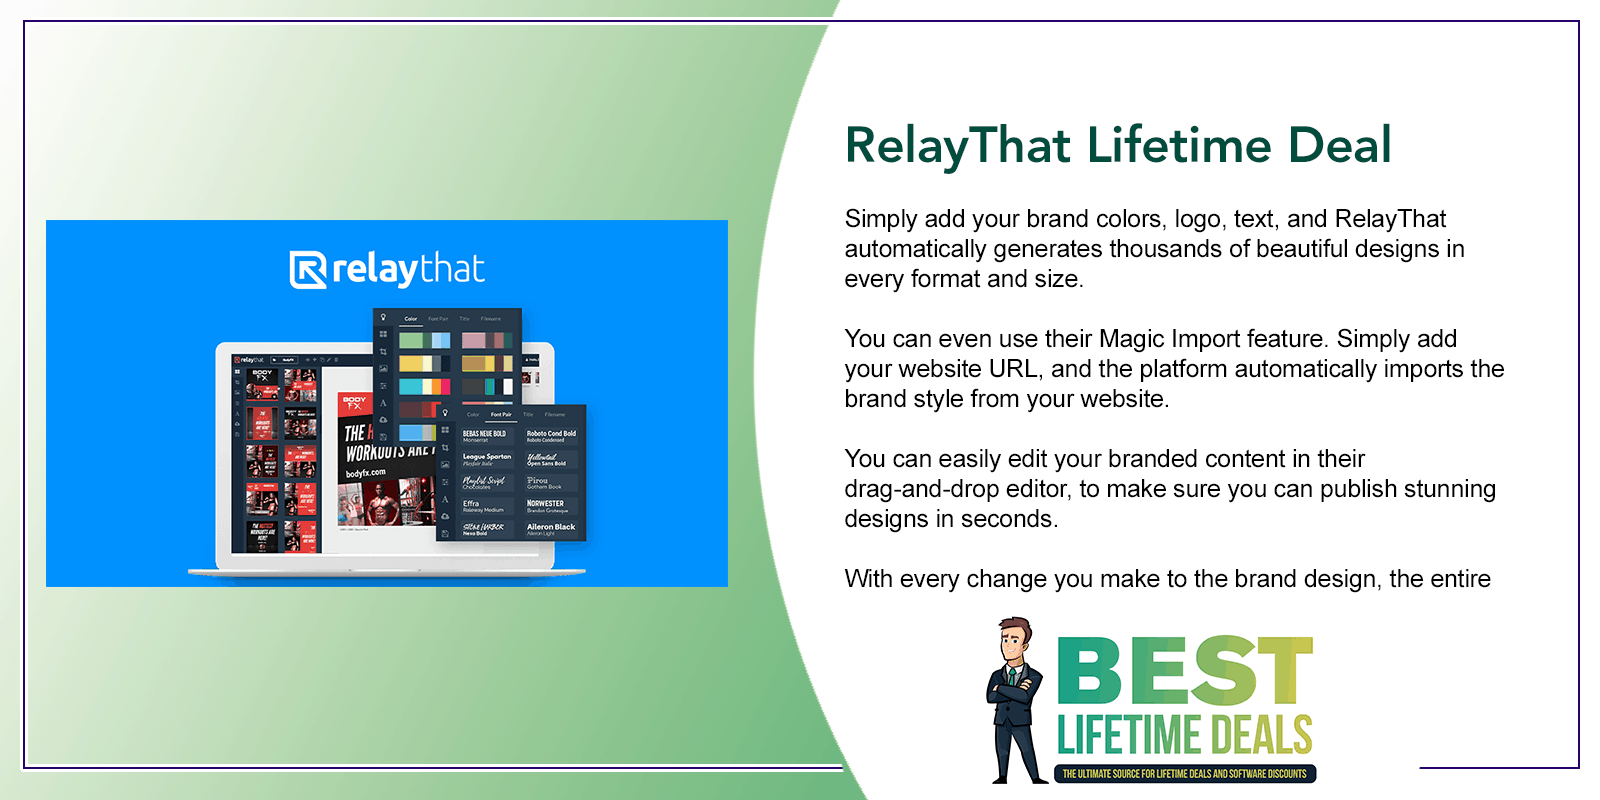 RelayThat Lifetime Deal Post Image